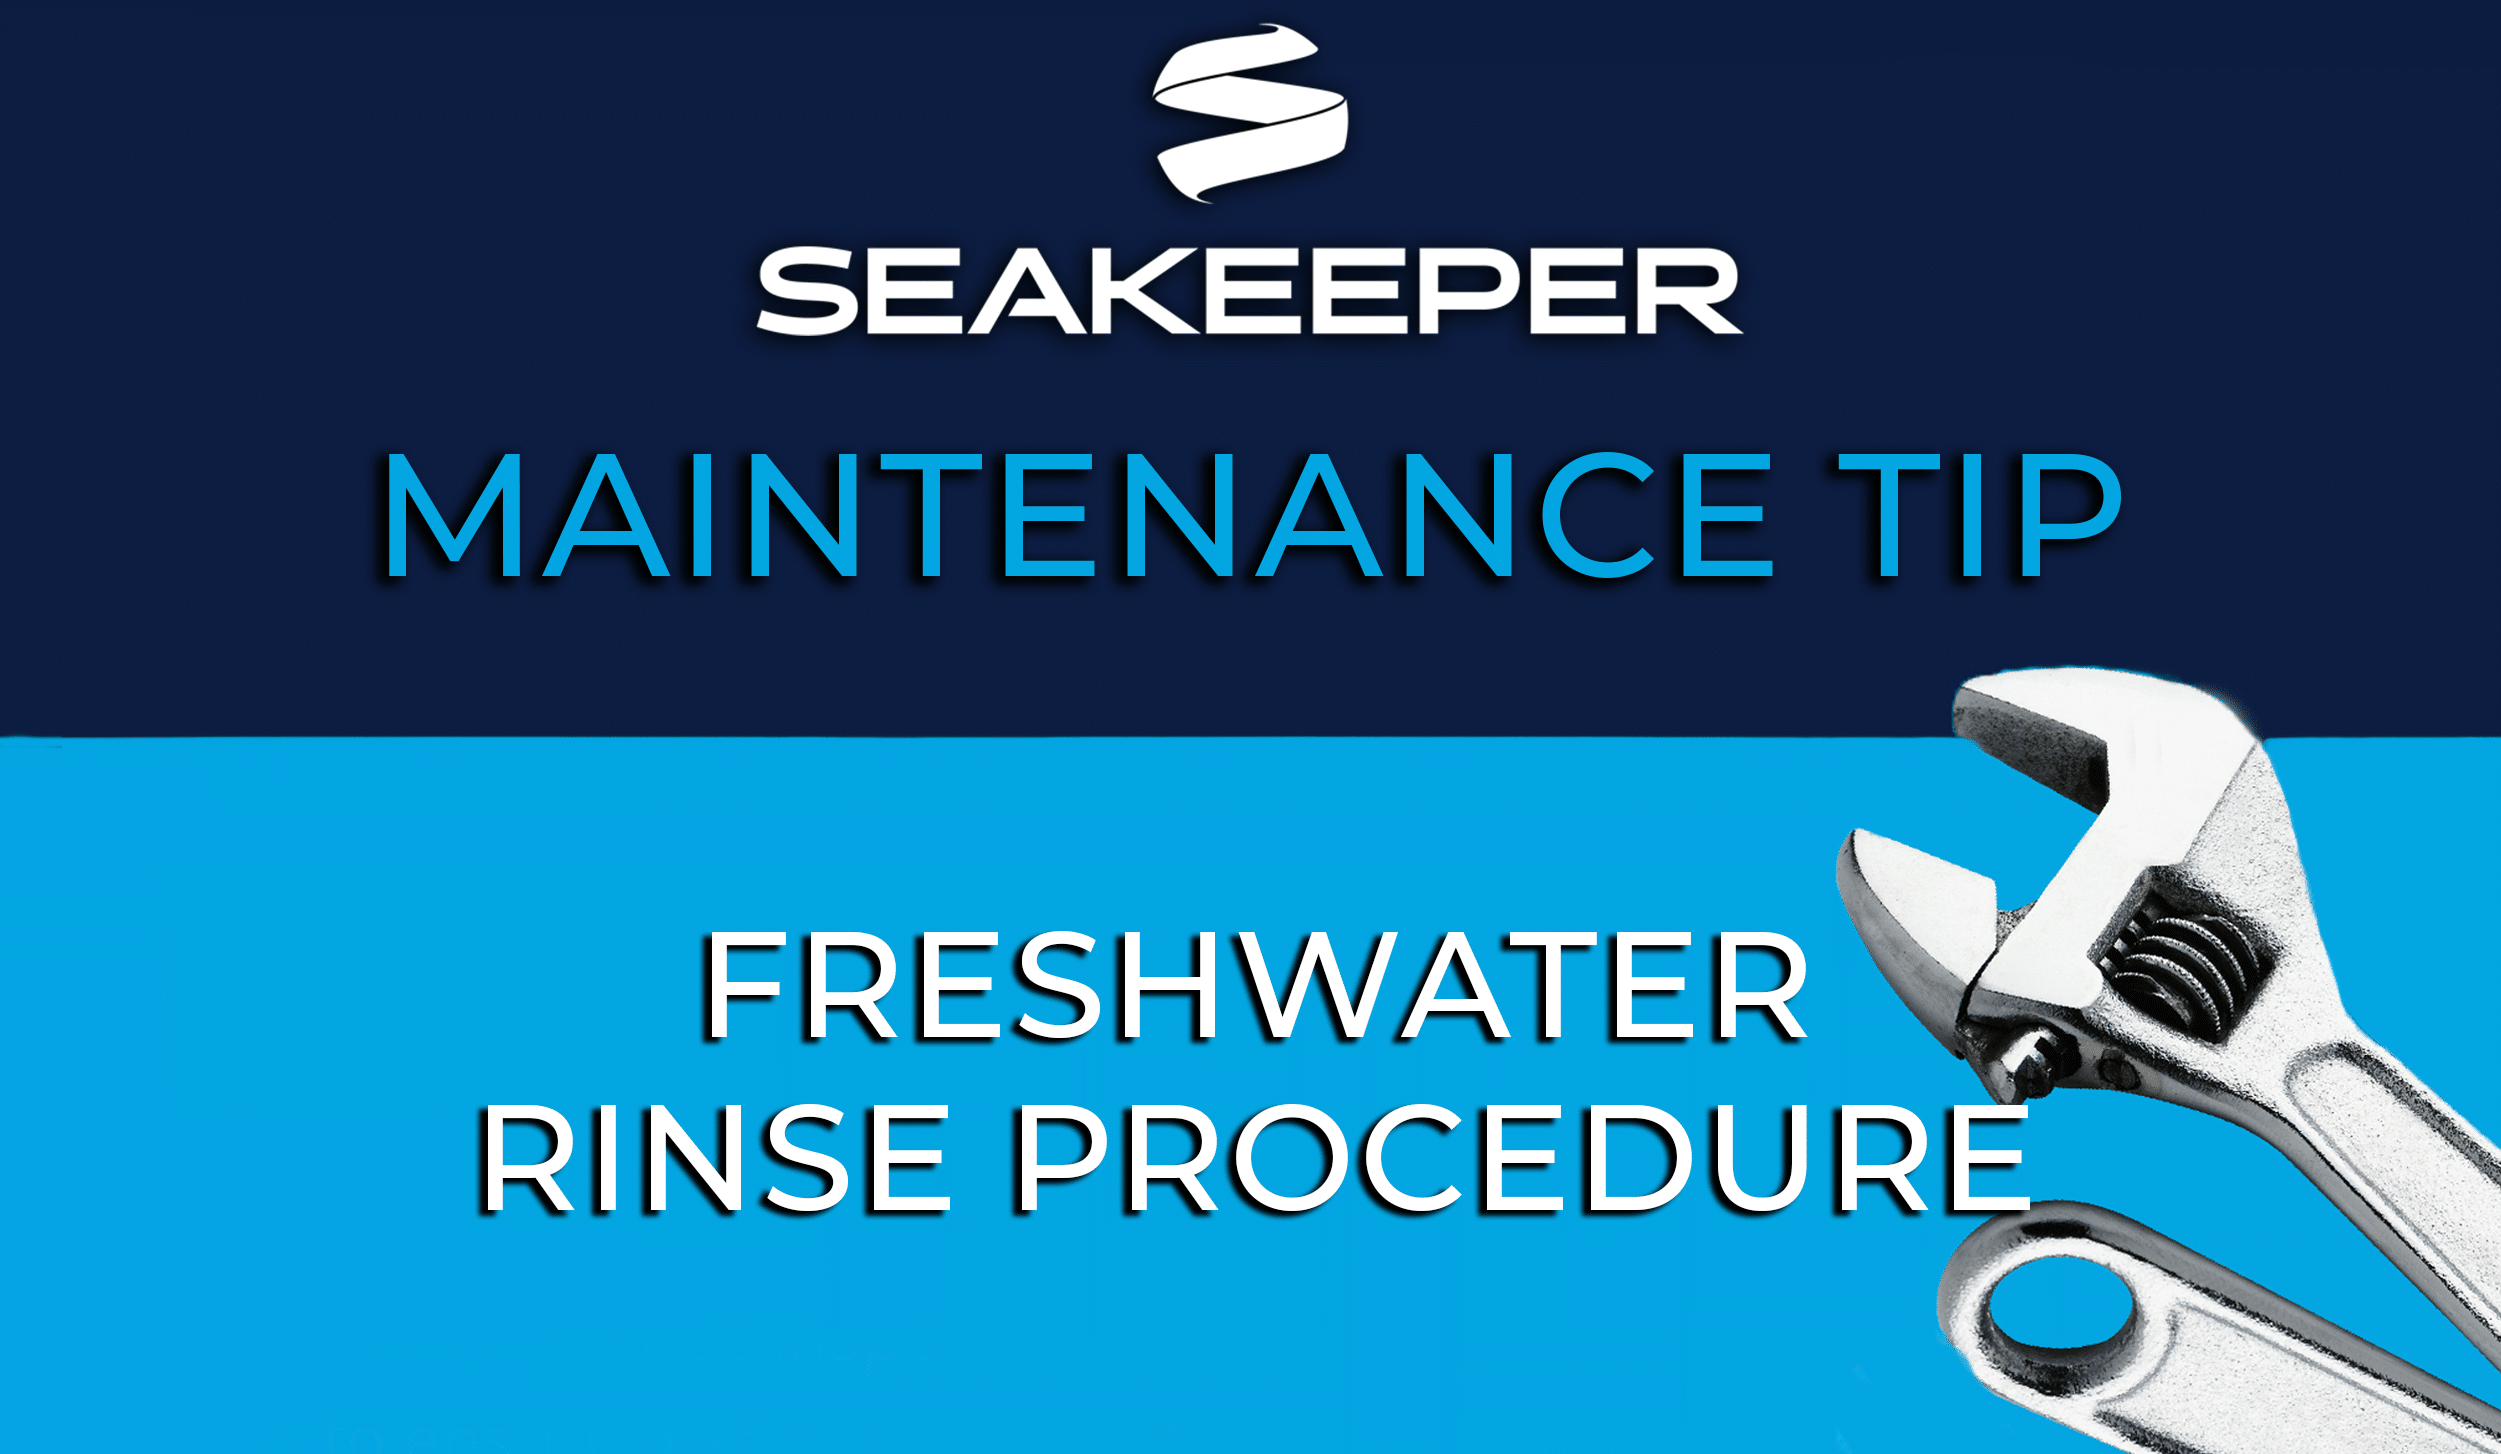 SeaKeeper Maintenance Tip: Freshwater Rinse Procedure